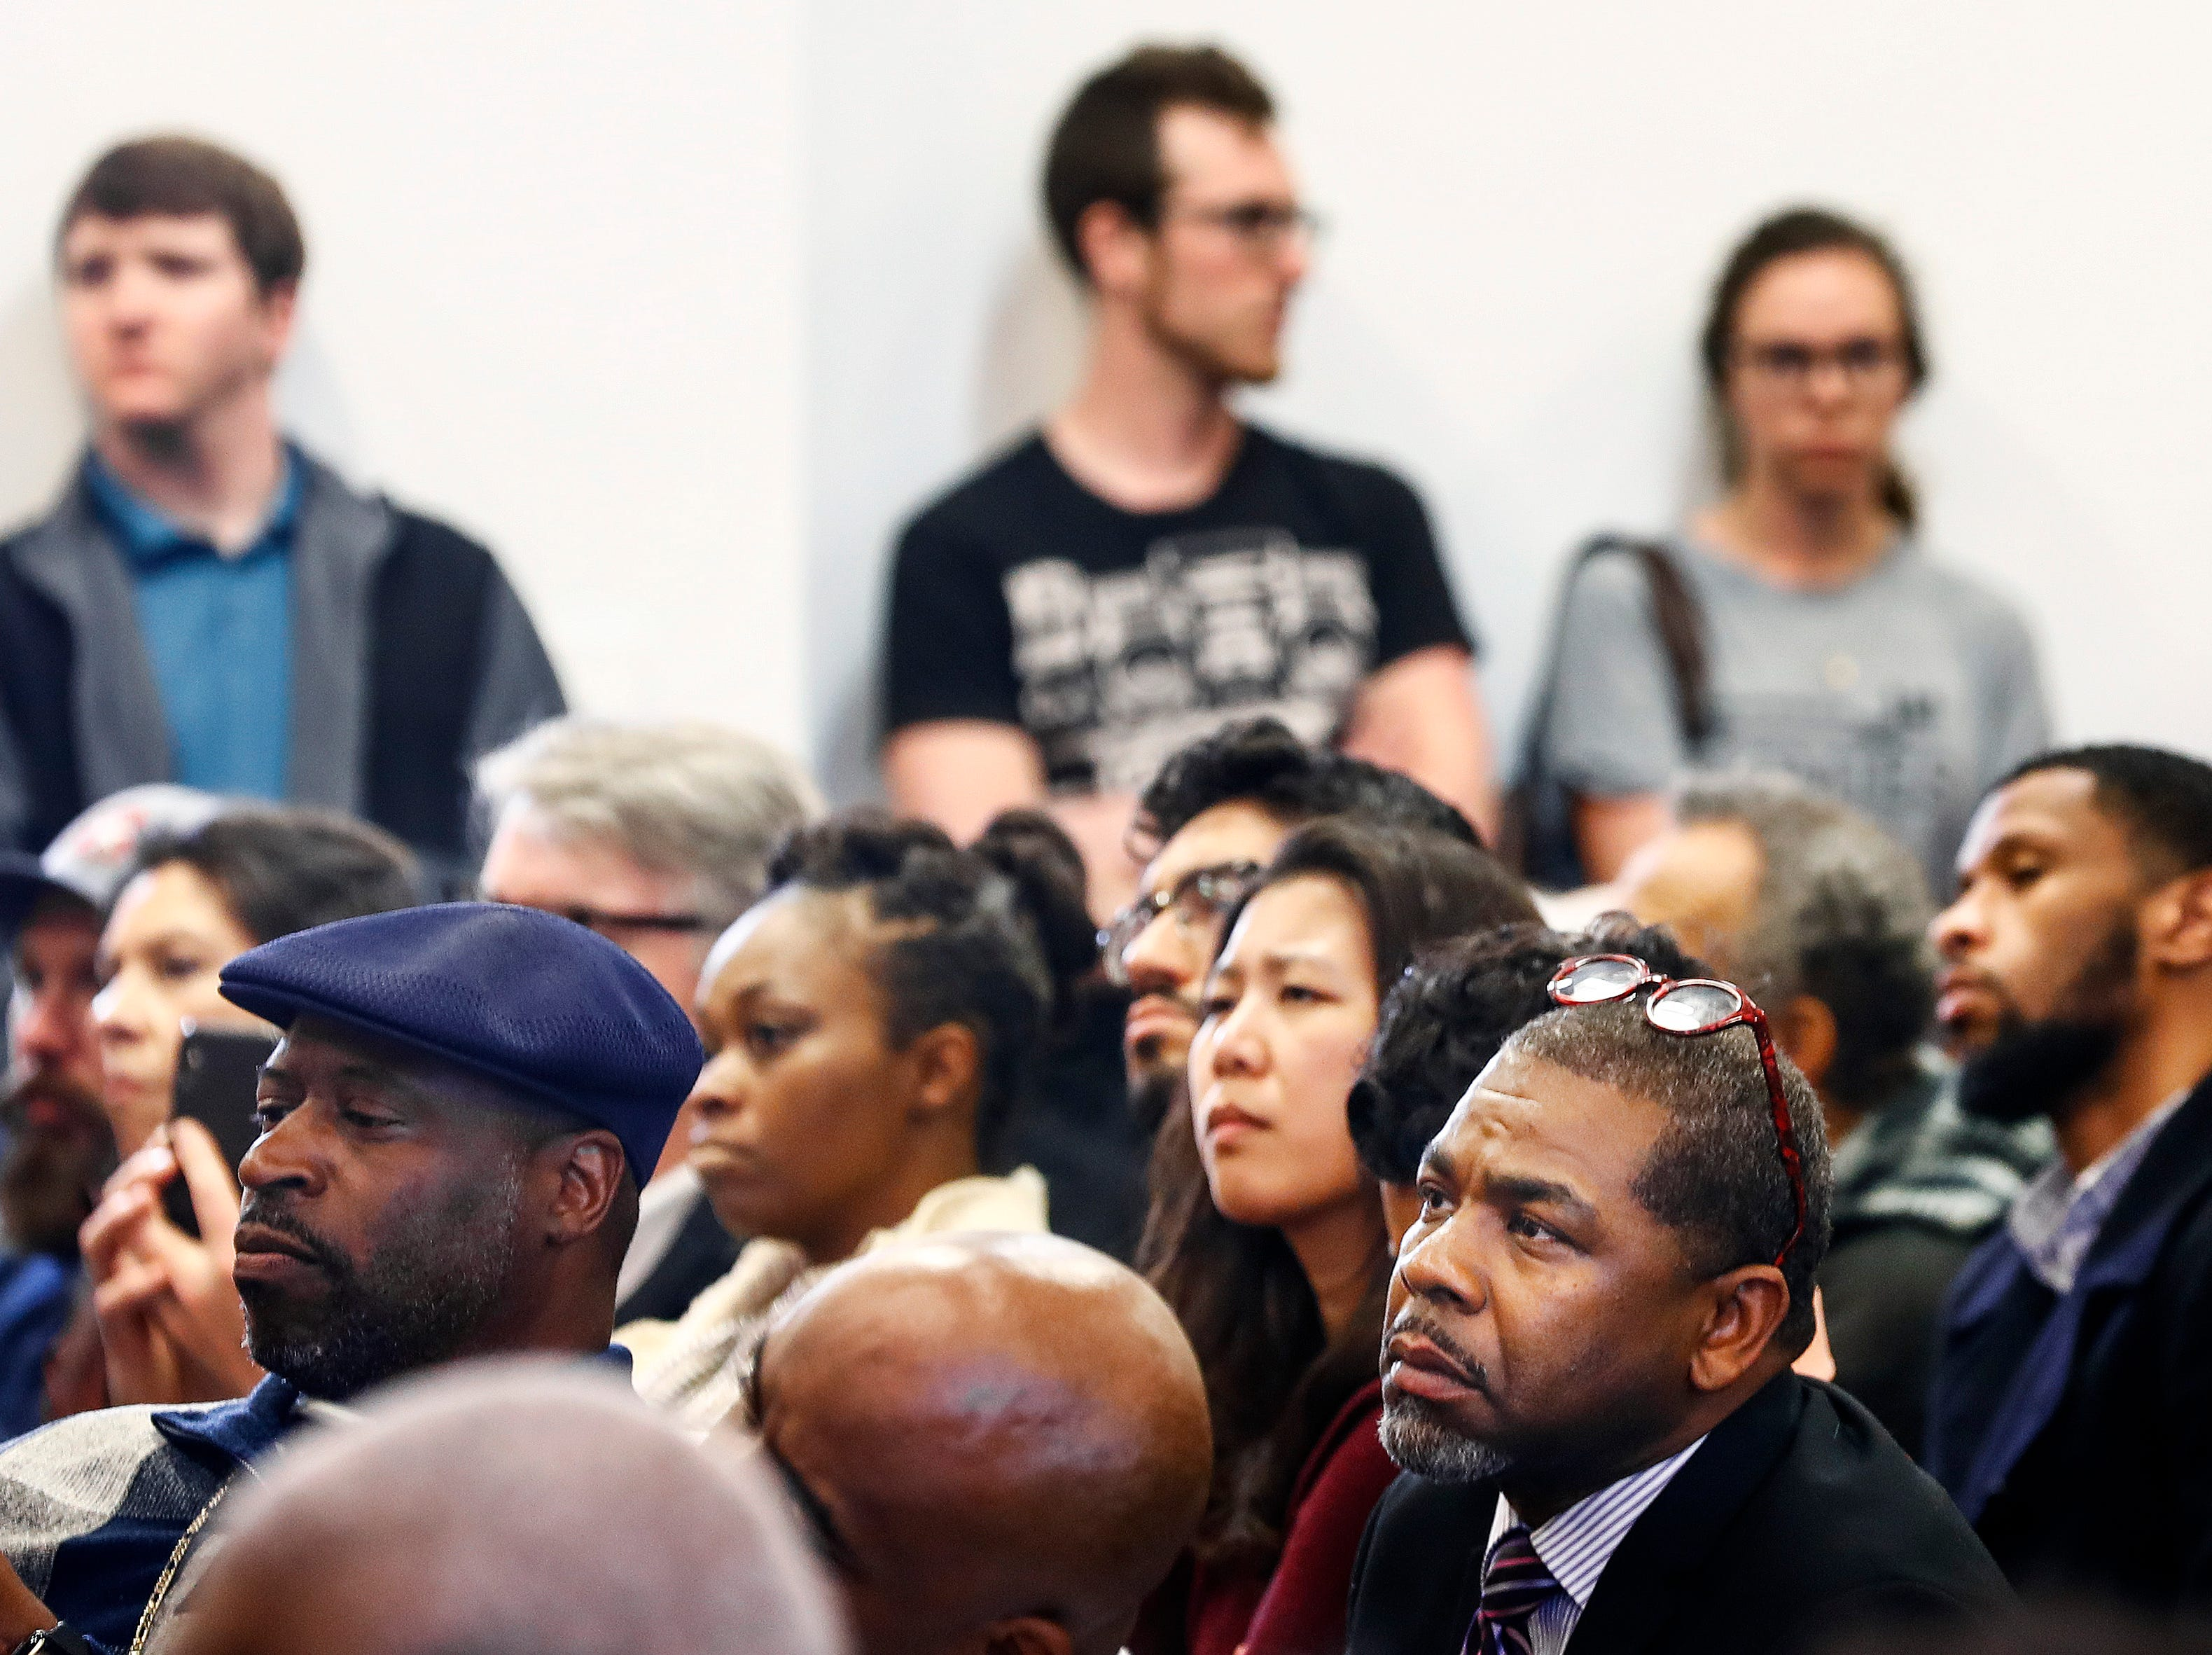 During a commemoration event at the National Civil Rights Museum on April 4, 2019, people reflect on the 51st anniversary of Dr. Martin Luther King, Jr.'s assassination.